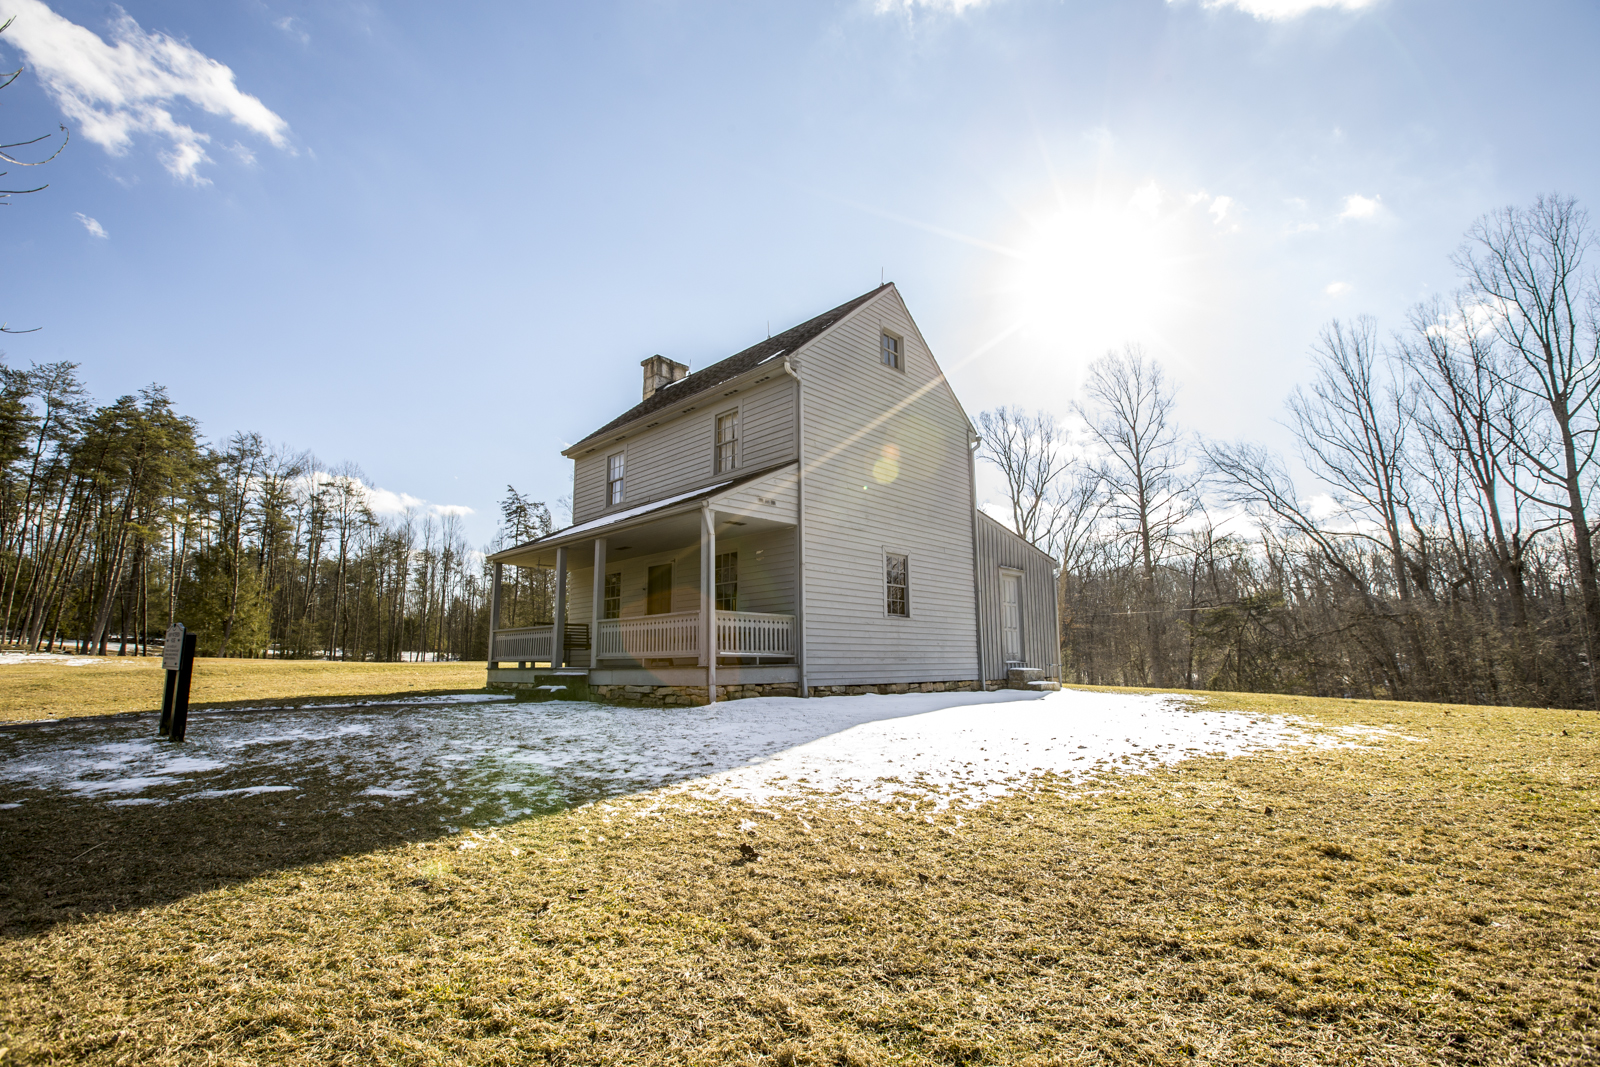 Henry Patterson House at Carnifax Ferry Battlefield in Southern West Virginia